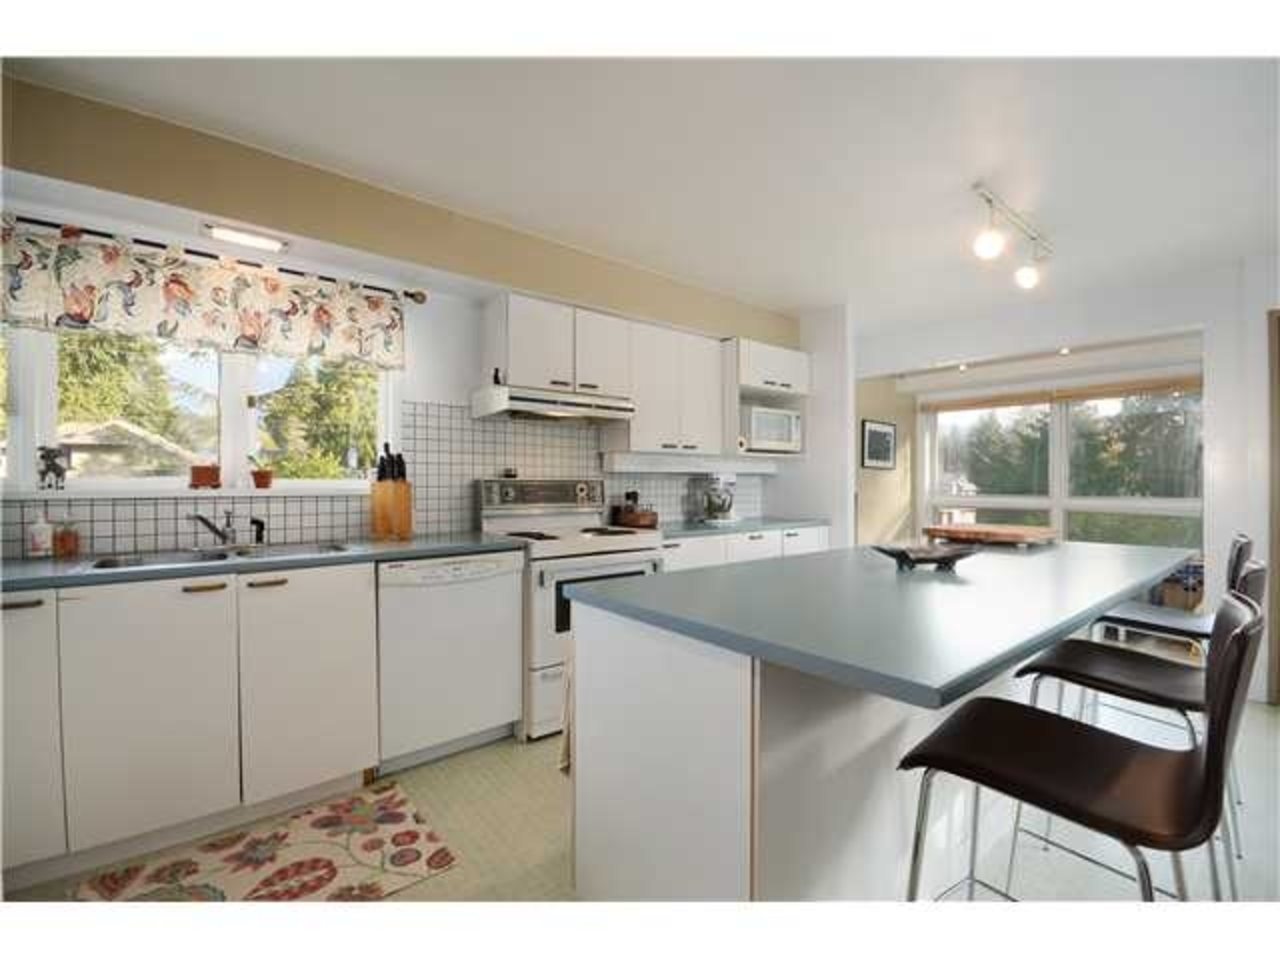 Kitchen at 2980 Thorncliffe Drive, Edgemont, North Vancouver